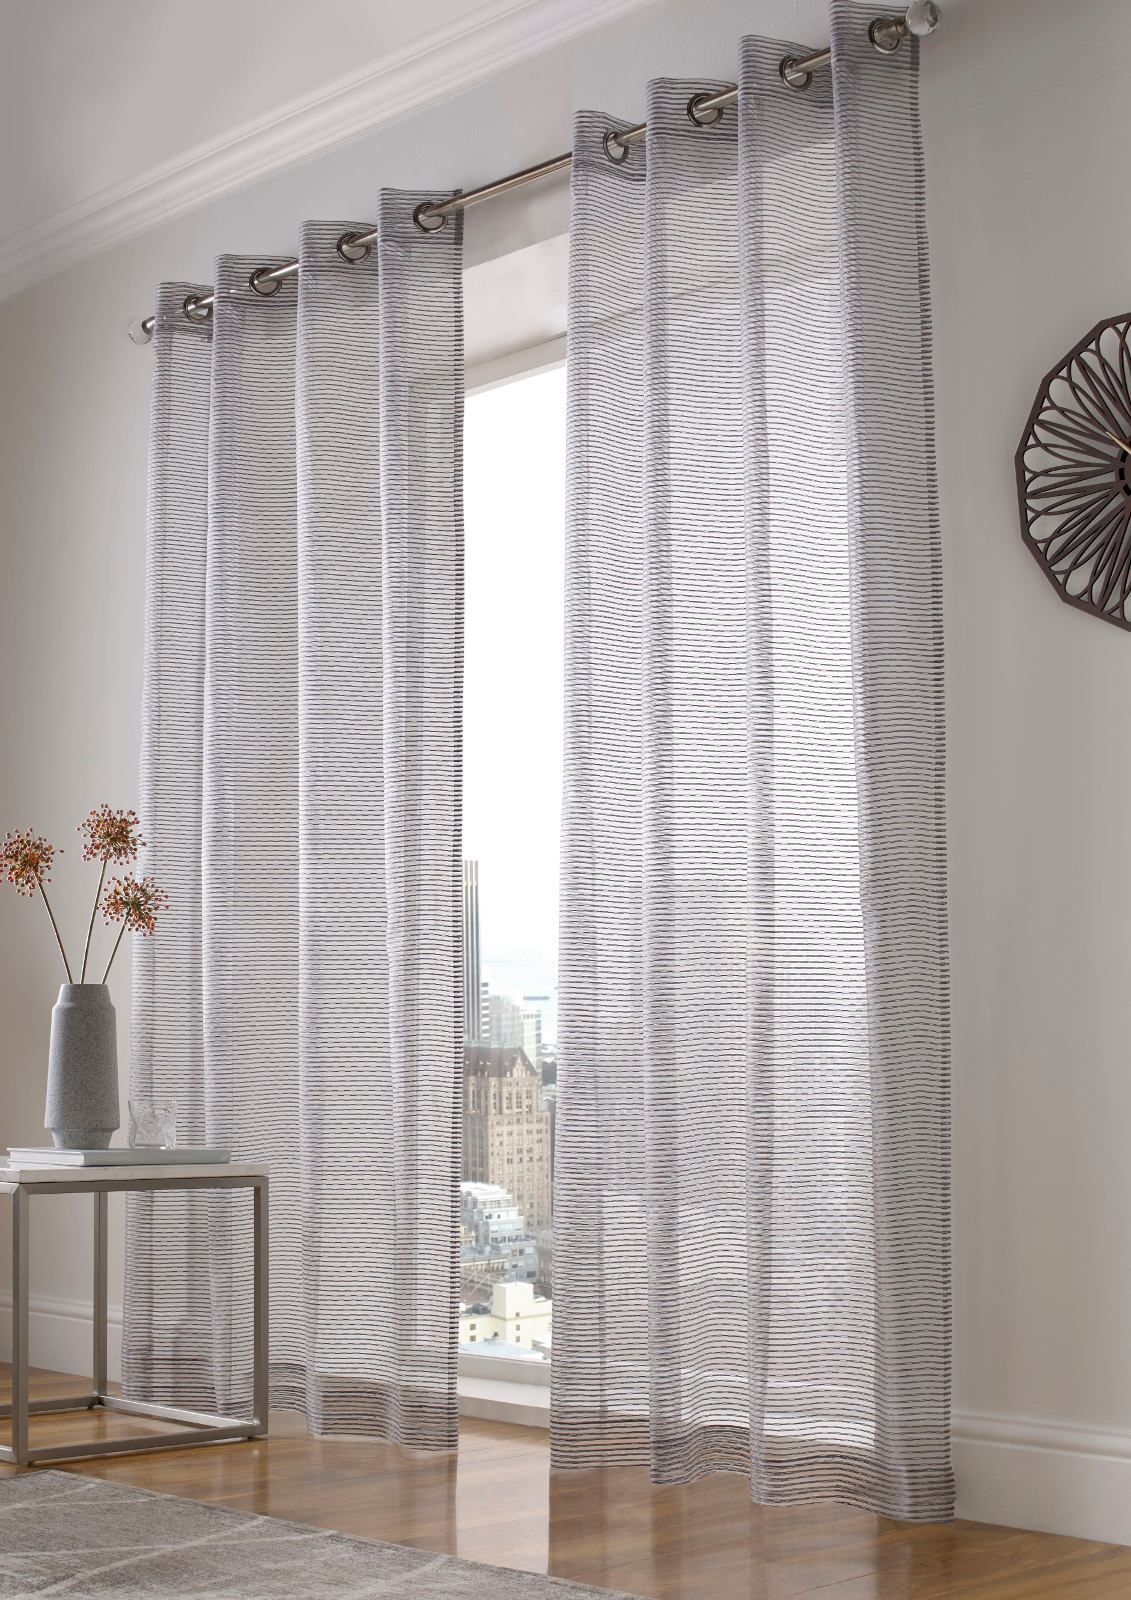 Voile Ombre Atlanta Sparkle Stripe Eyelet Voile Curtain Bling Ready